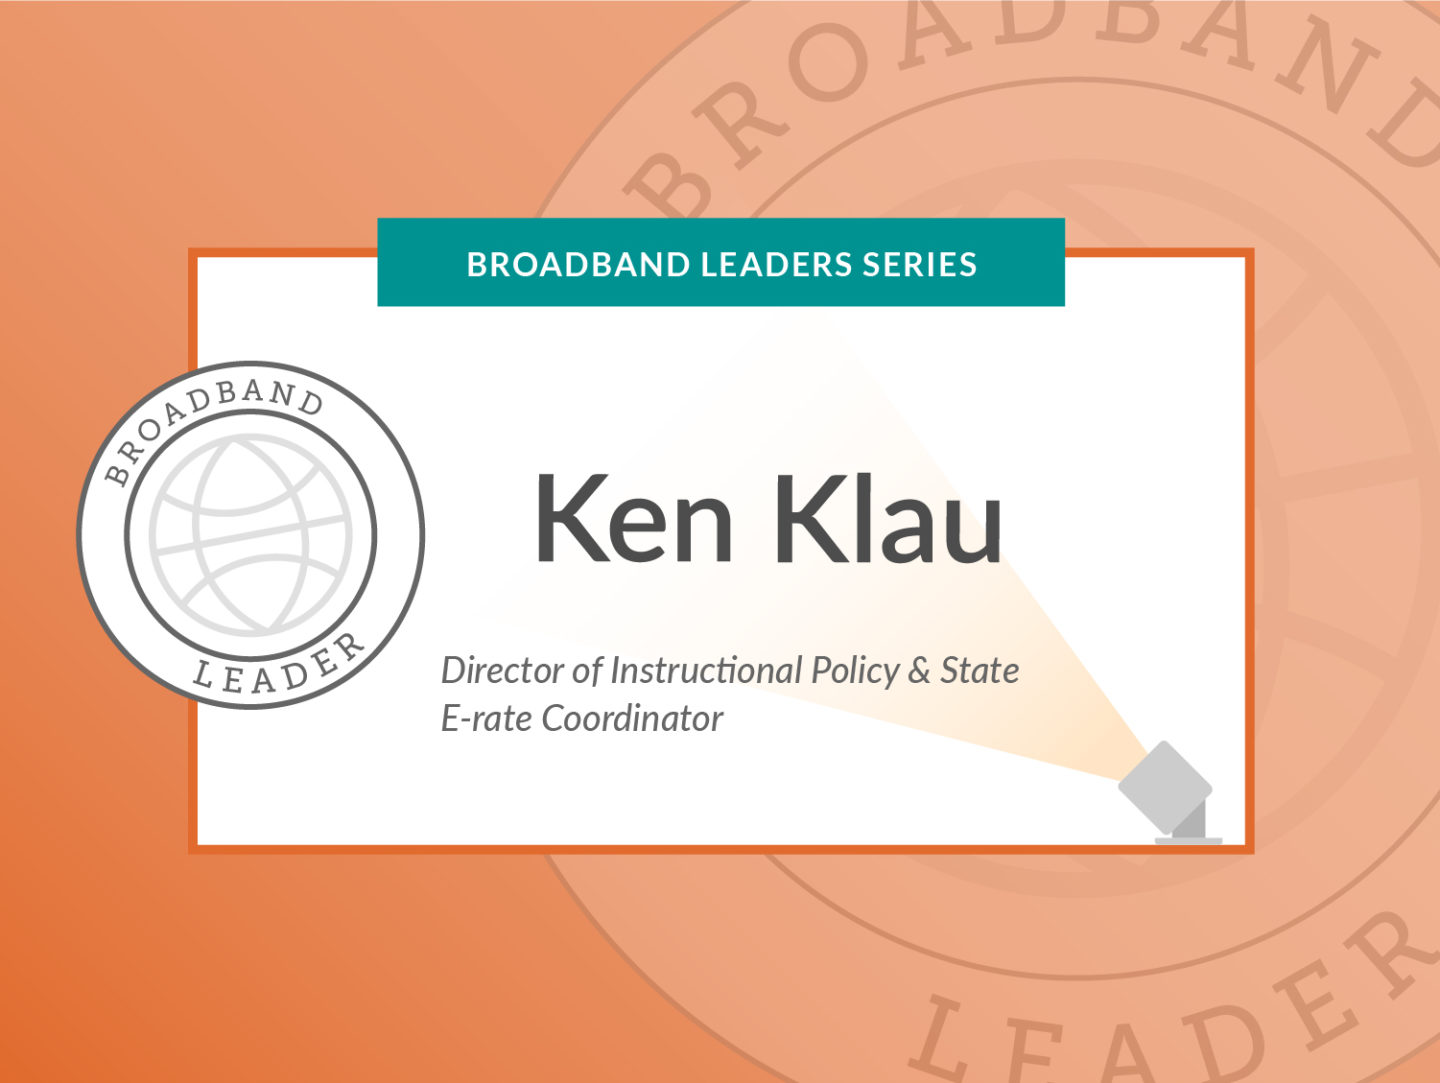 Broadband Leaders Series - Ken Klau, Director of Instructional Policy & State E-rate Coordinator